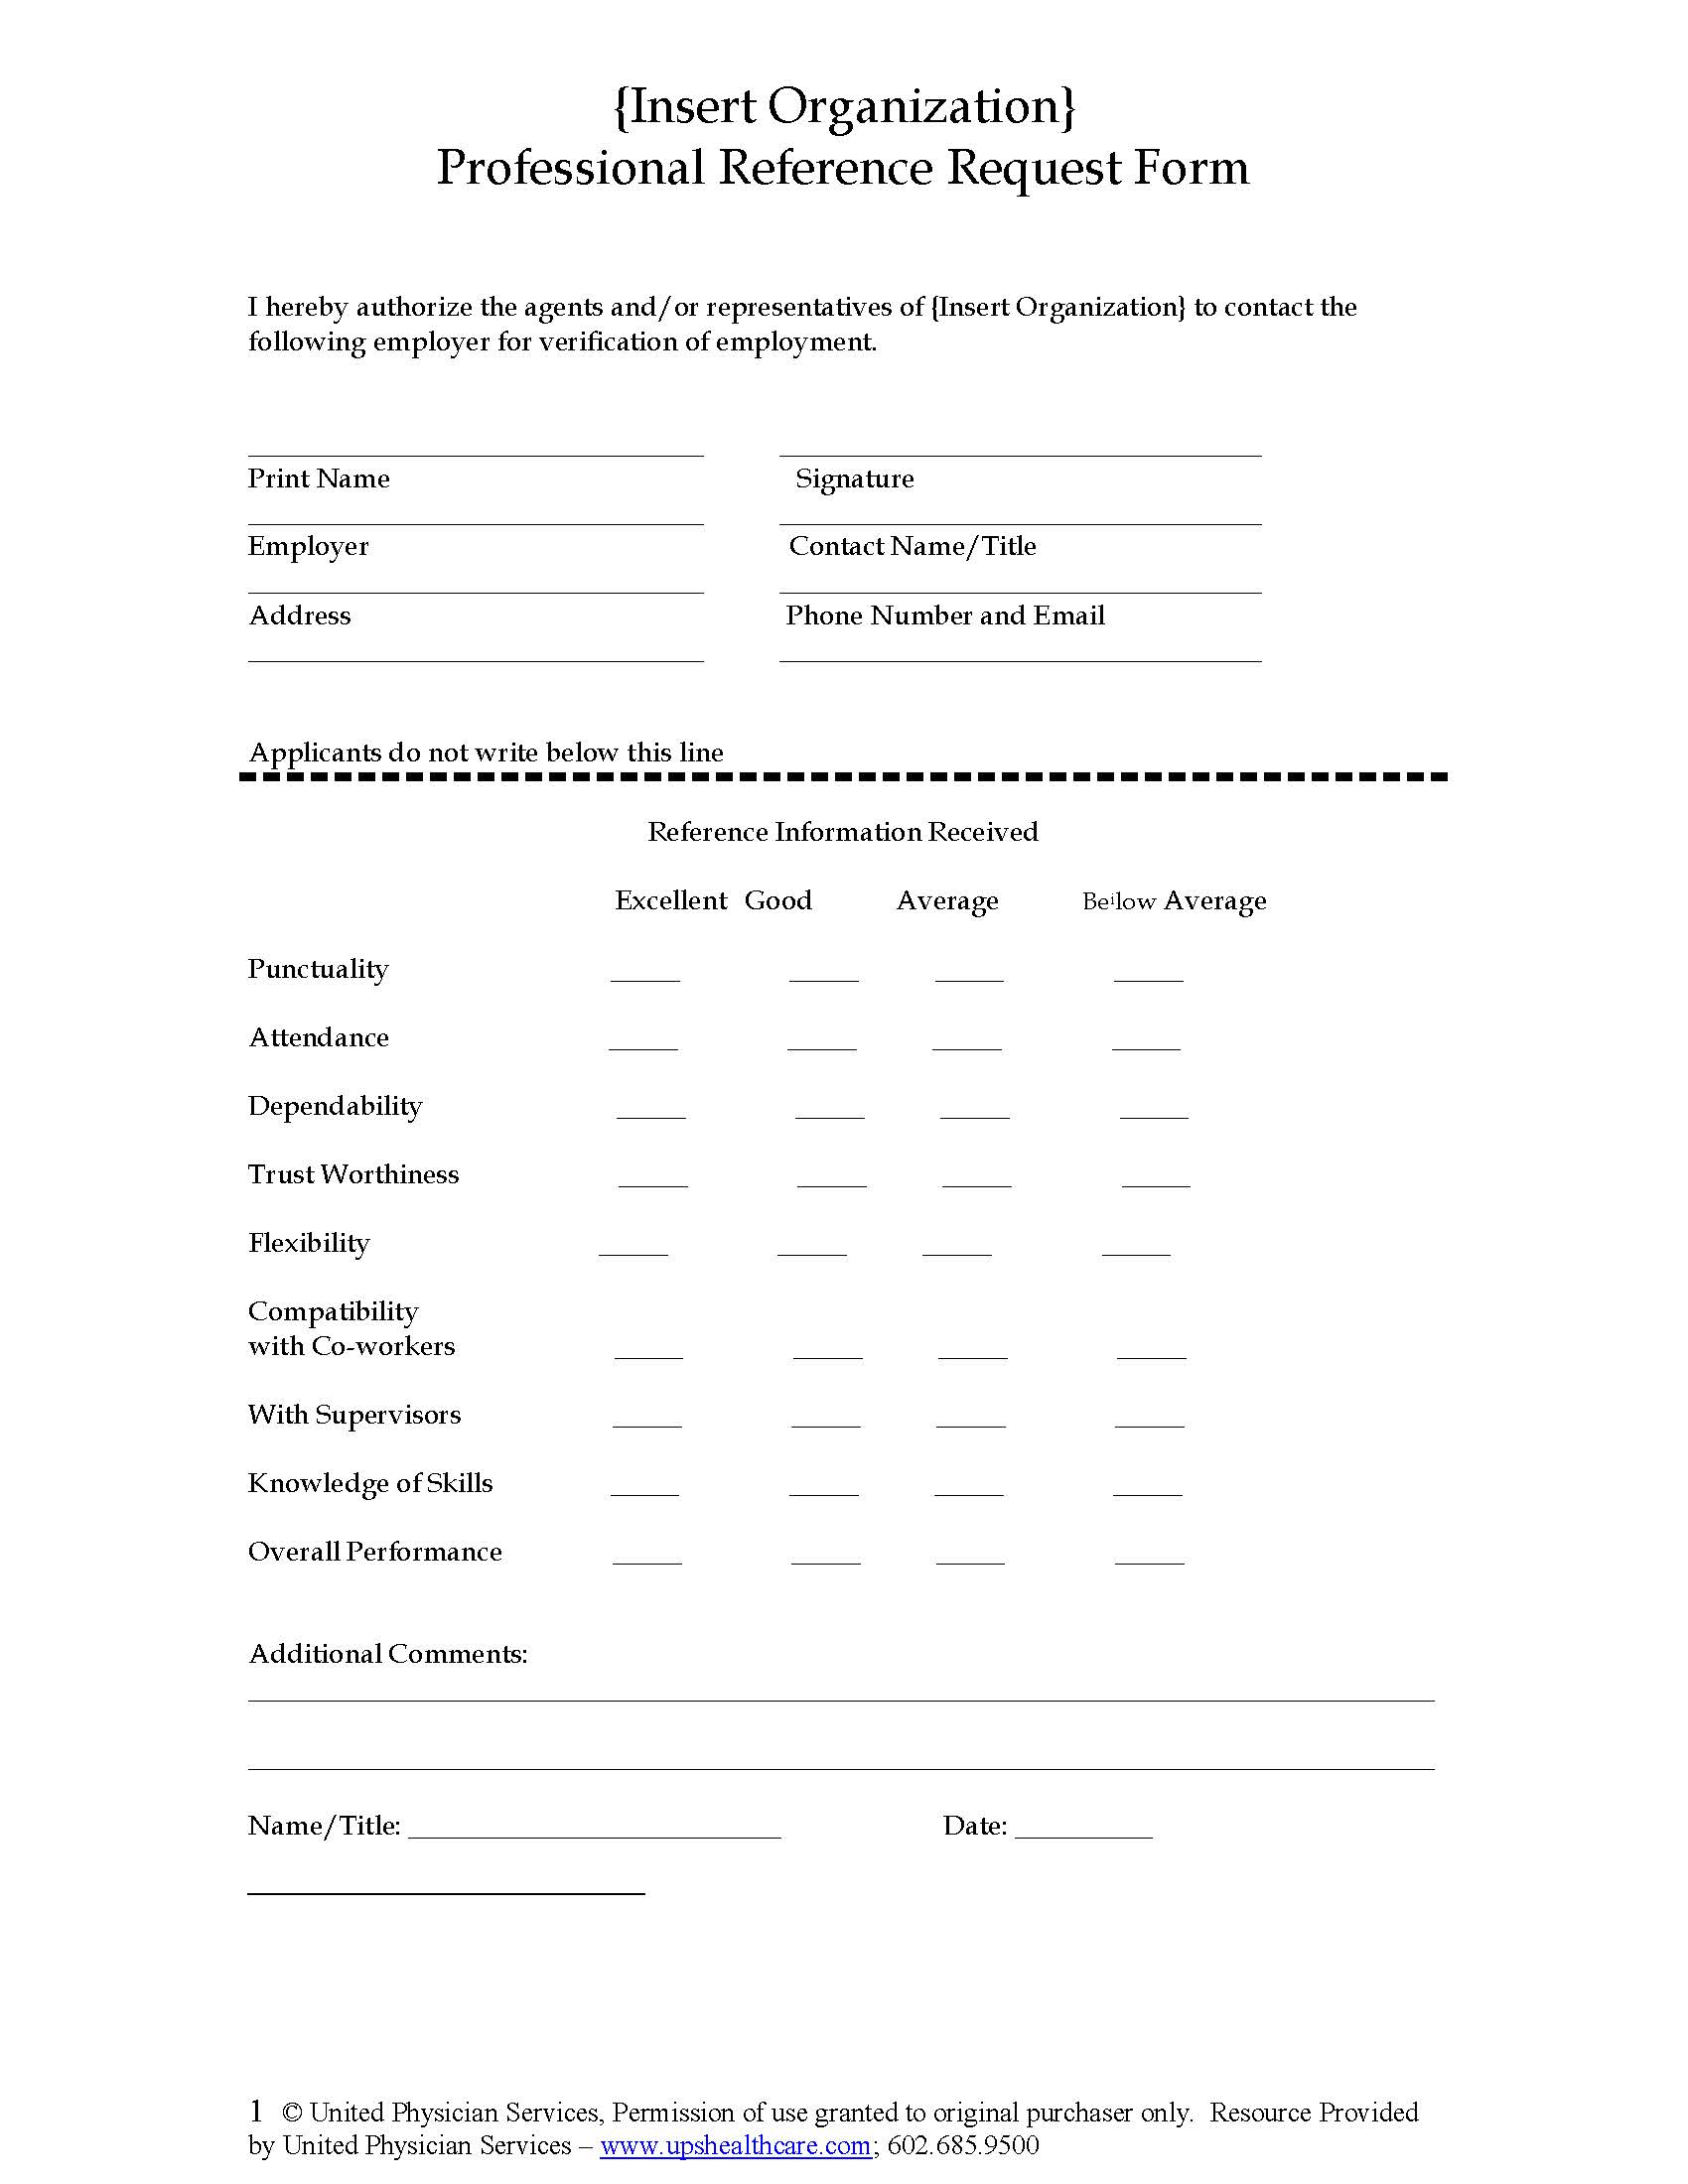 Professional Reference Request Form